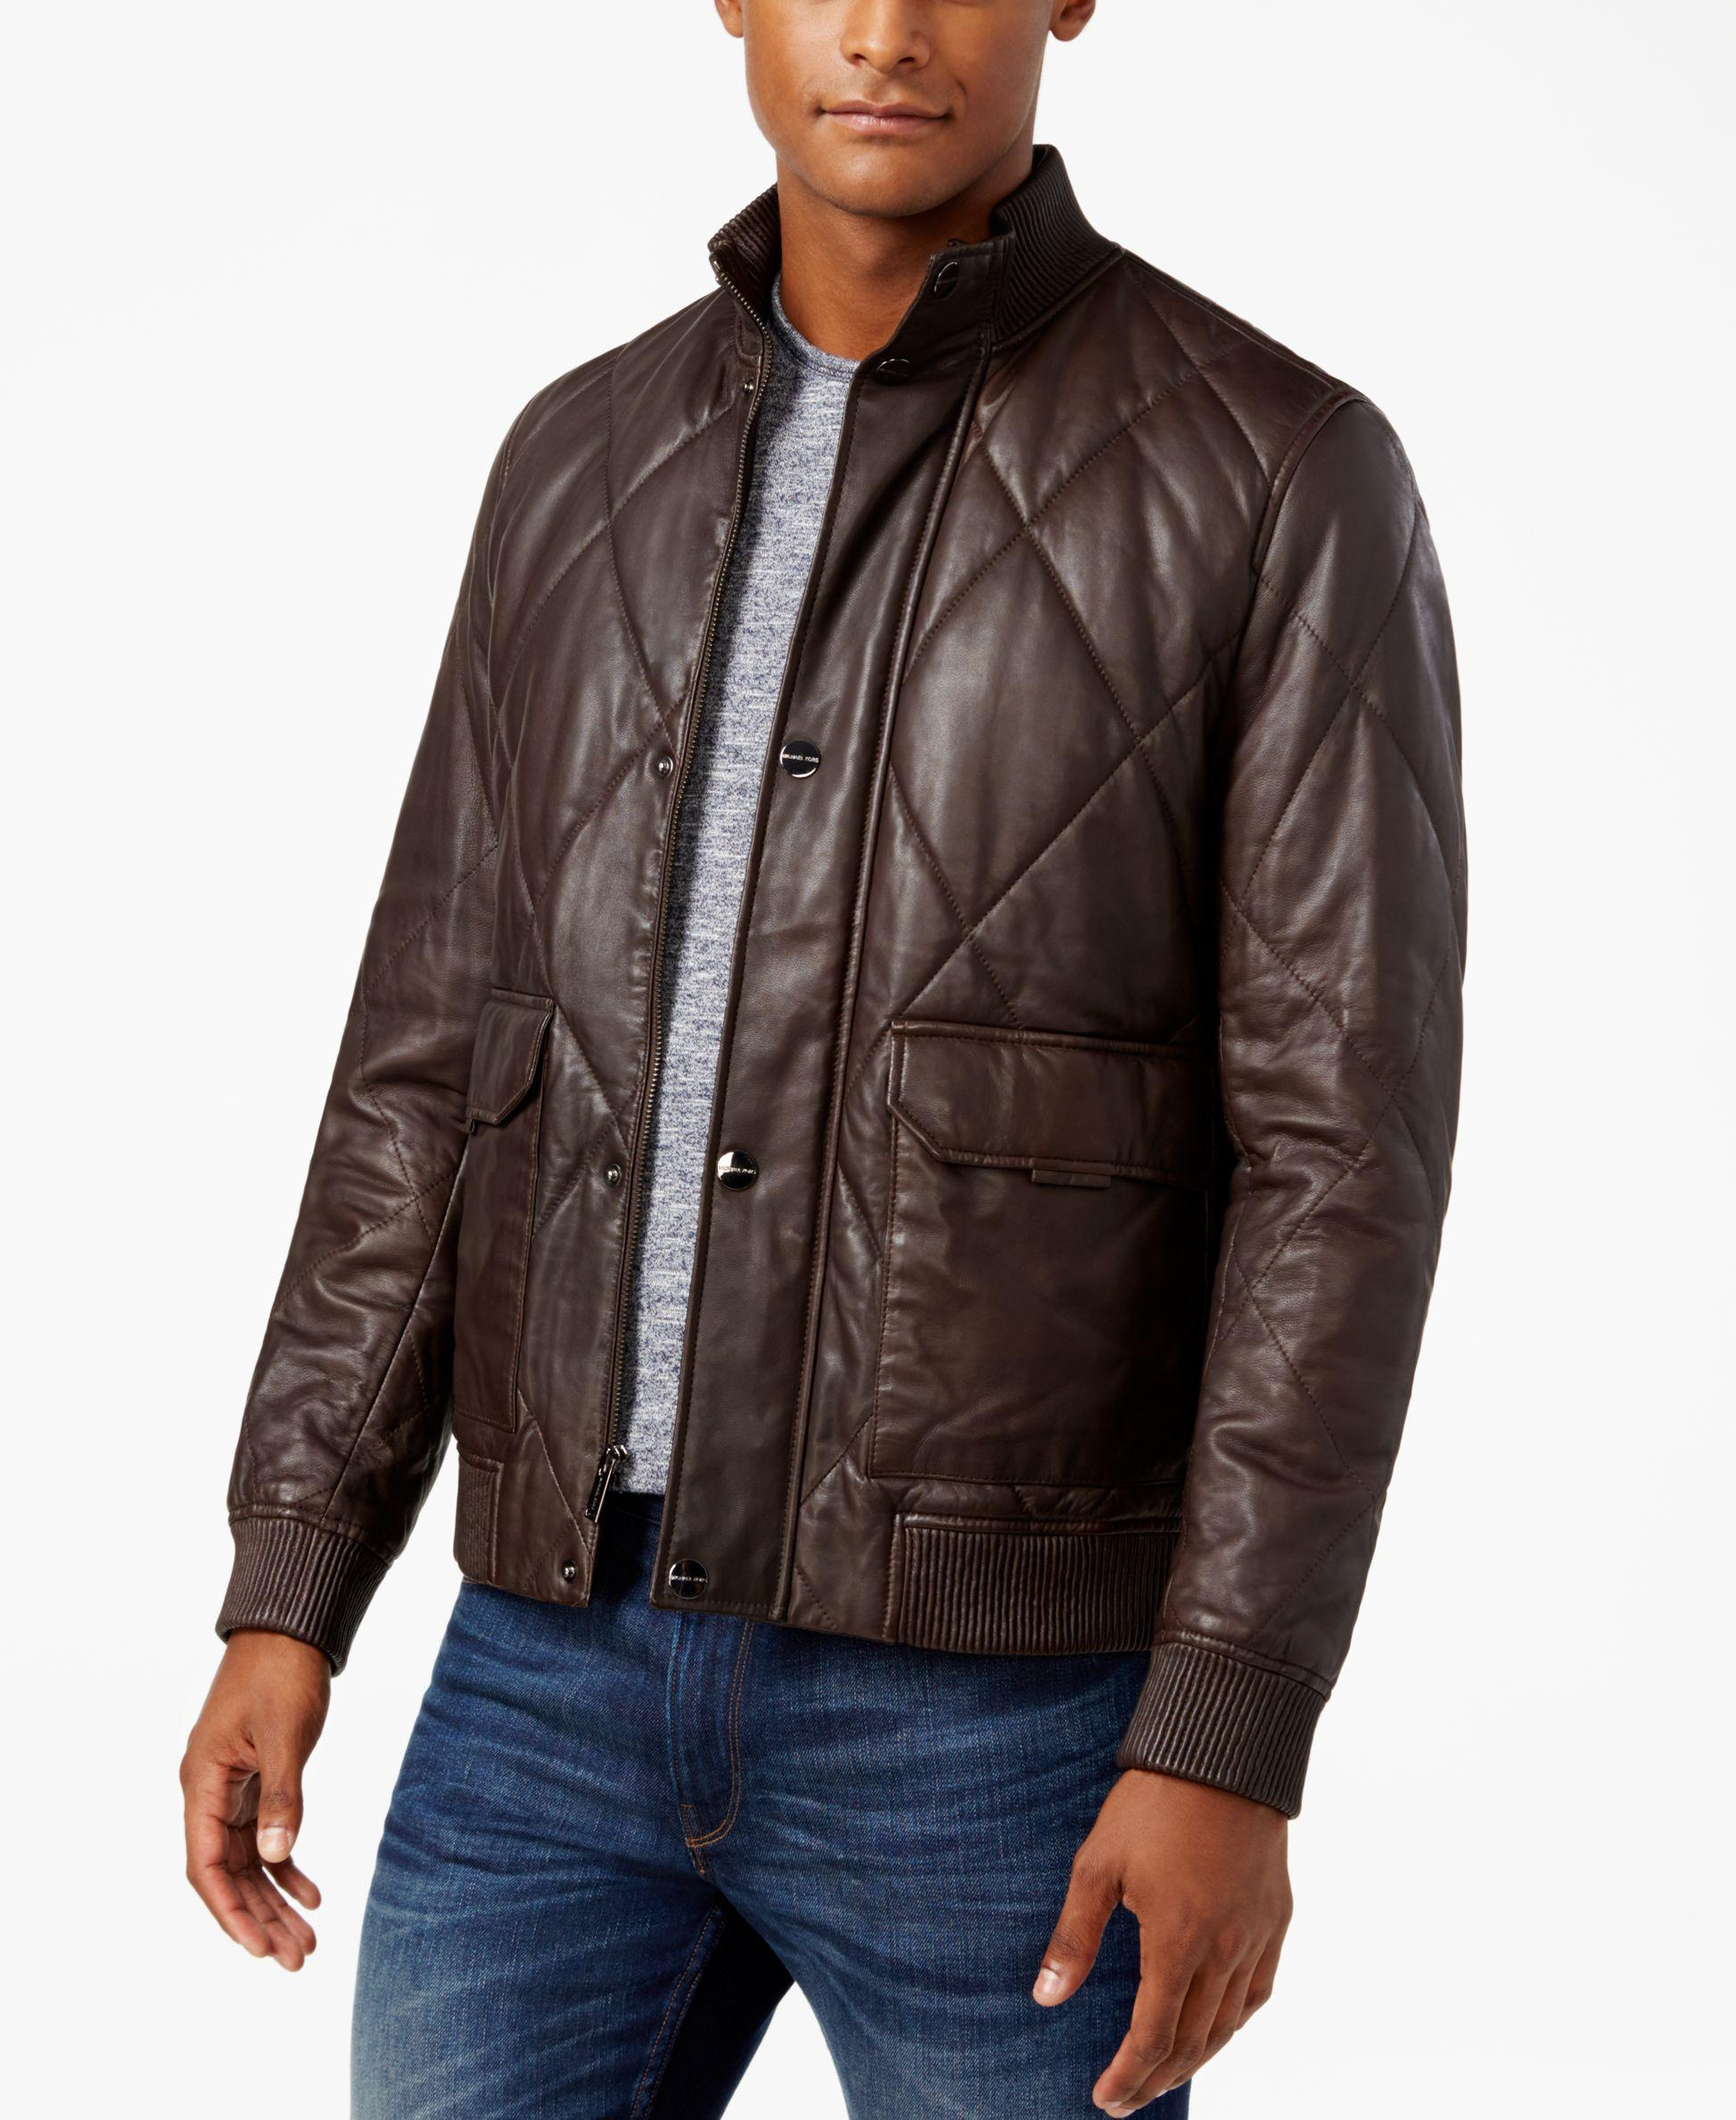 Michael kors Men's Quilted Leather Bomber Jacket in Brown for Men ...